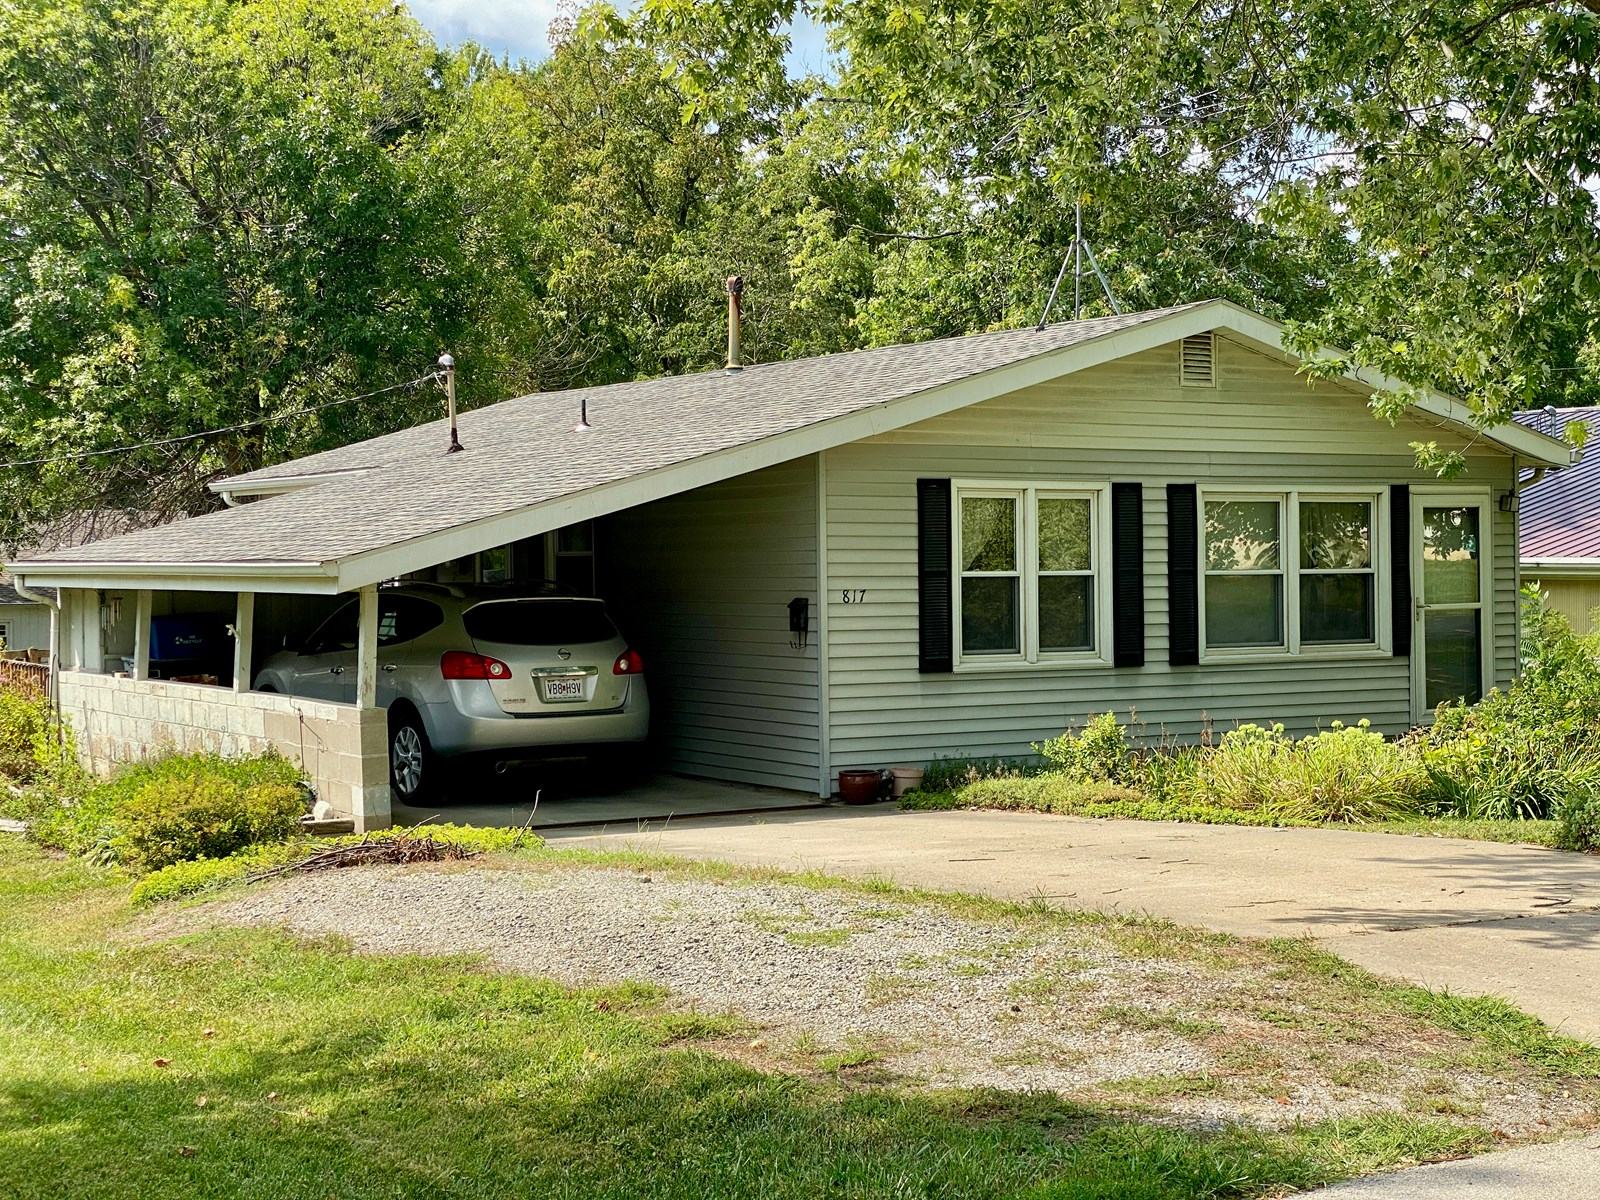 Budget Ranch Home for Sale in Cameron, MO, Dekalb County